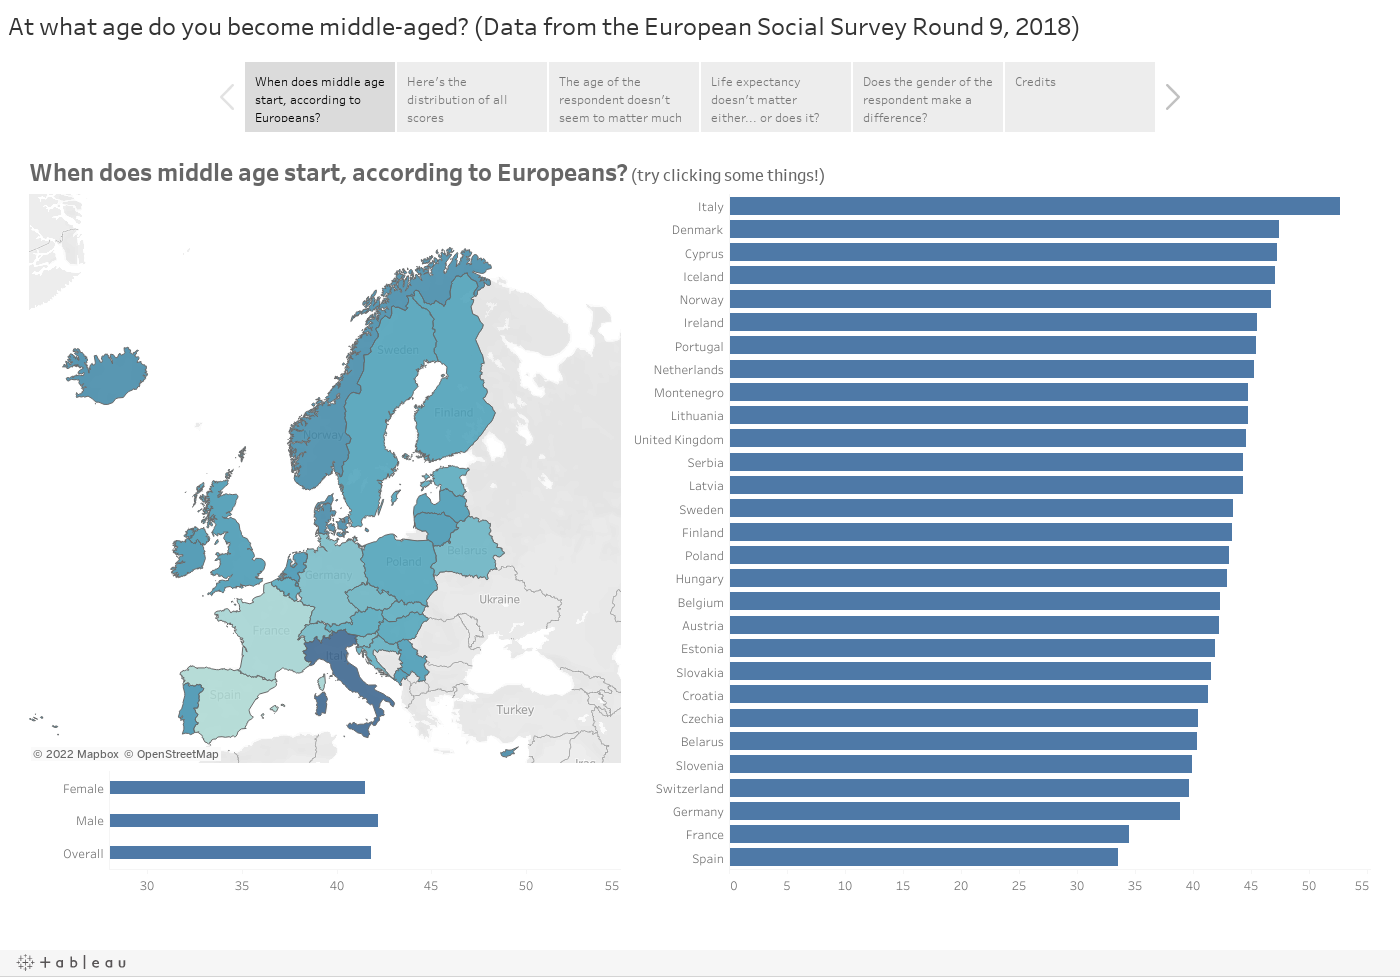 At what age do you become middle-aged? (Data from the European Social Survey Round 9, 2018)